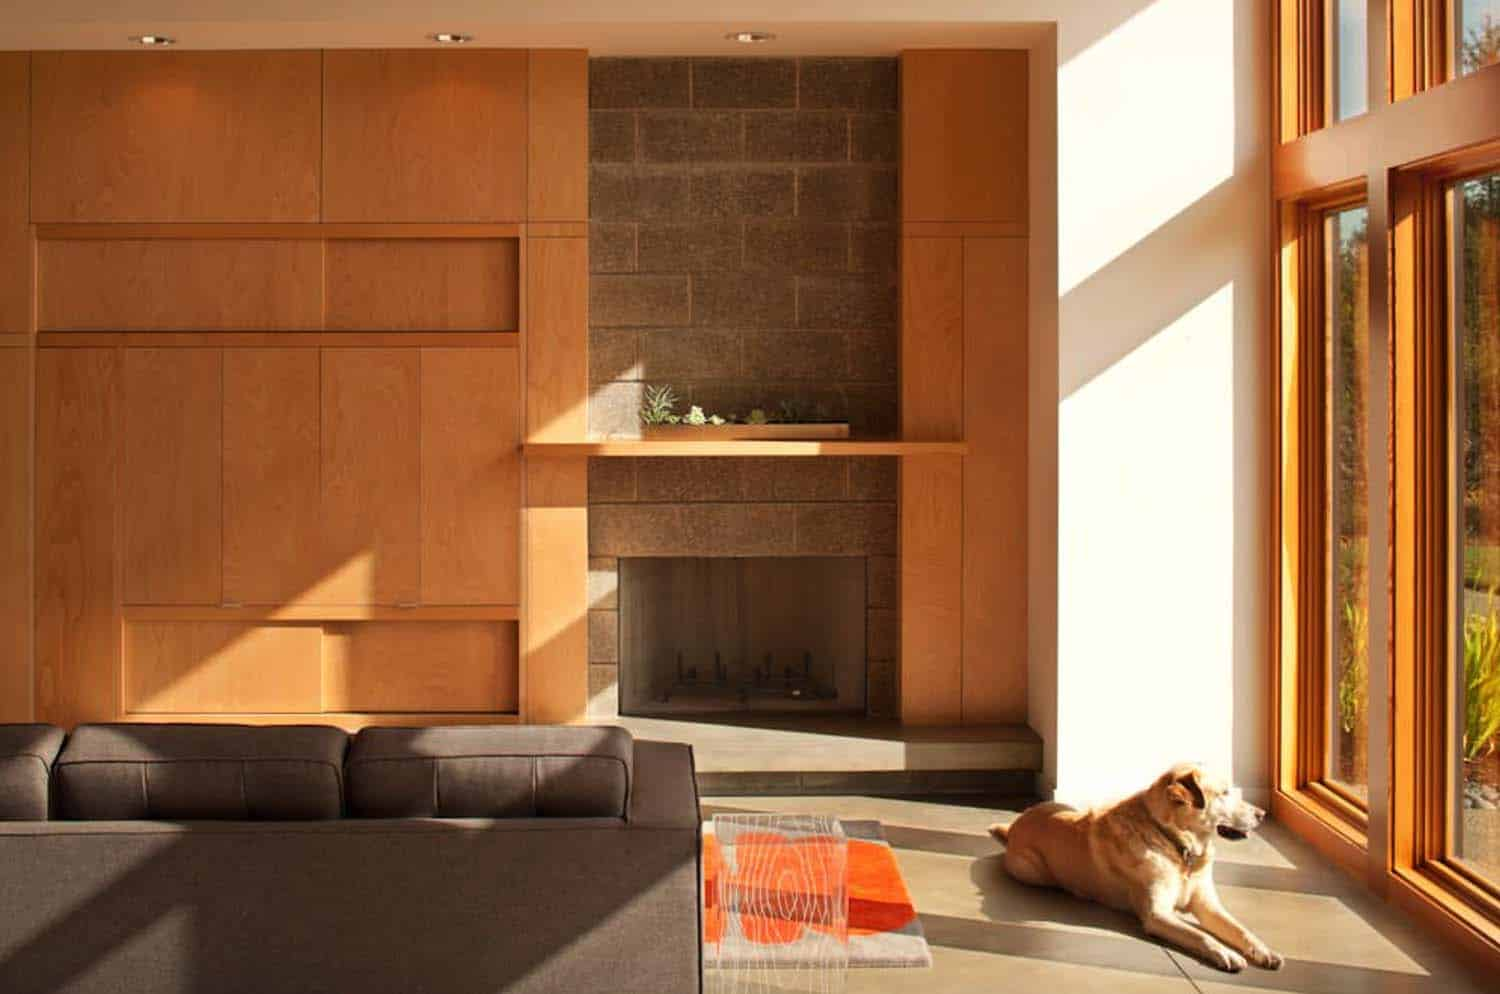 Livable Modern Home-Coates Design Architects-18-1 Kindesign